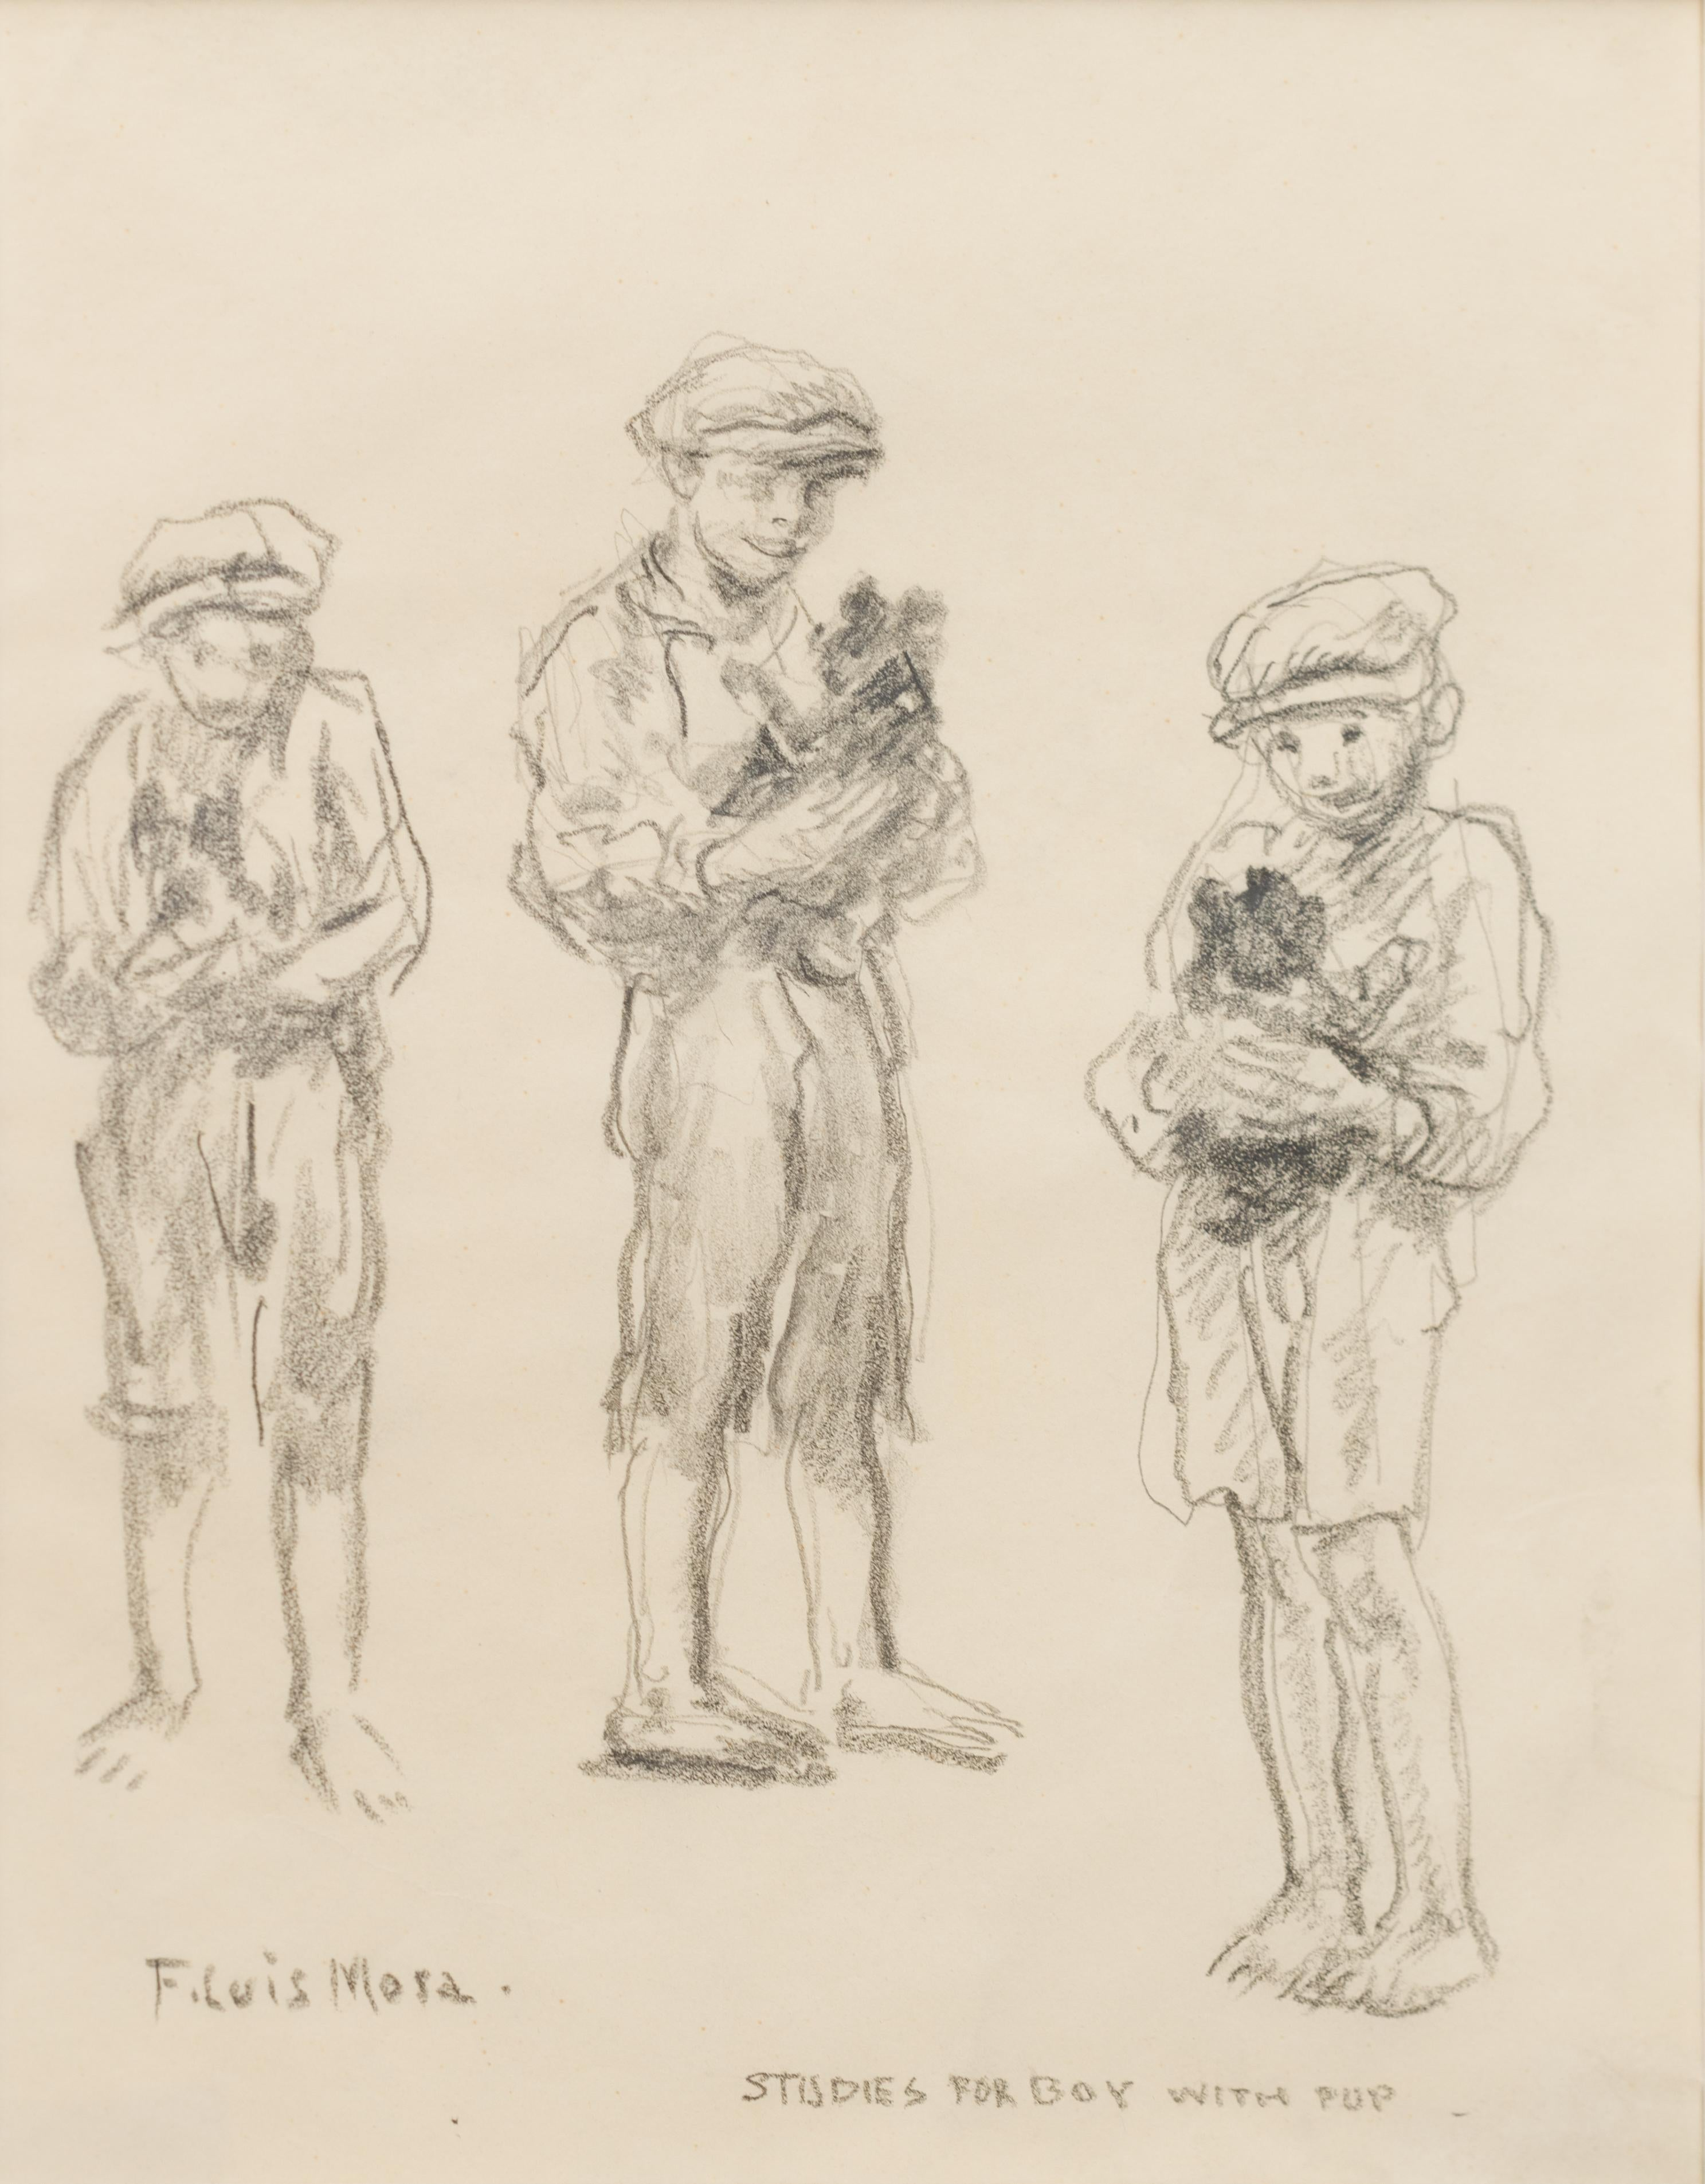 Sketch For Boy with Pup, Vintage American Drawing of the Ash Can School